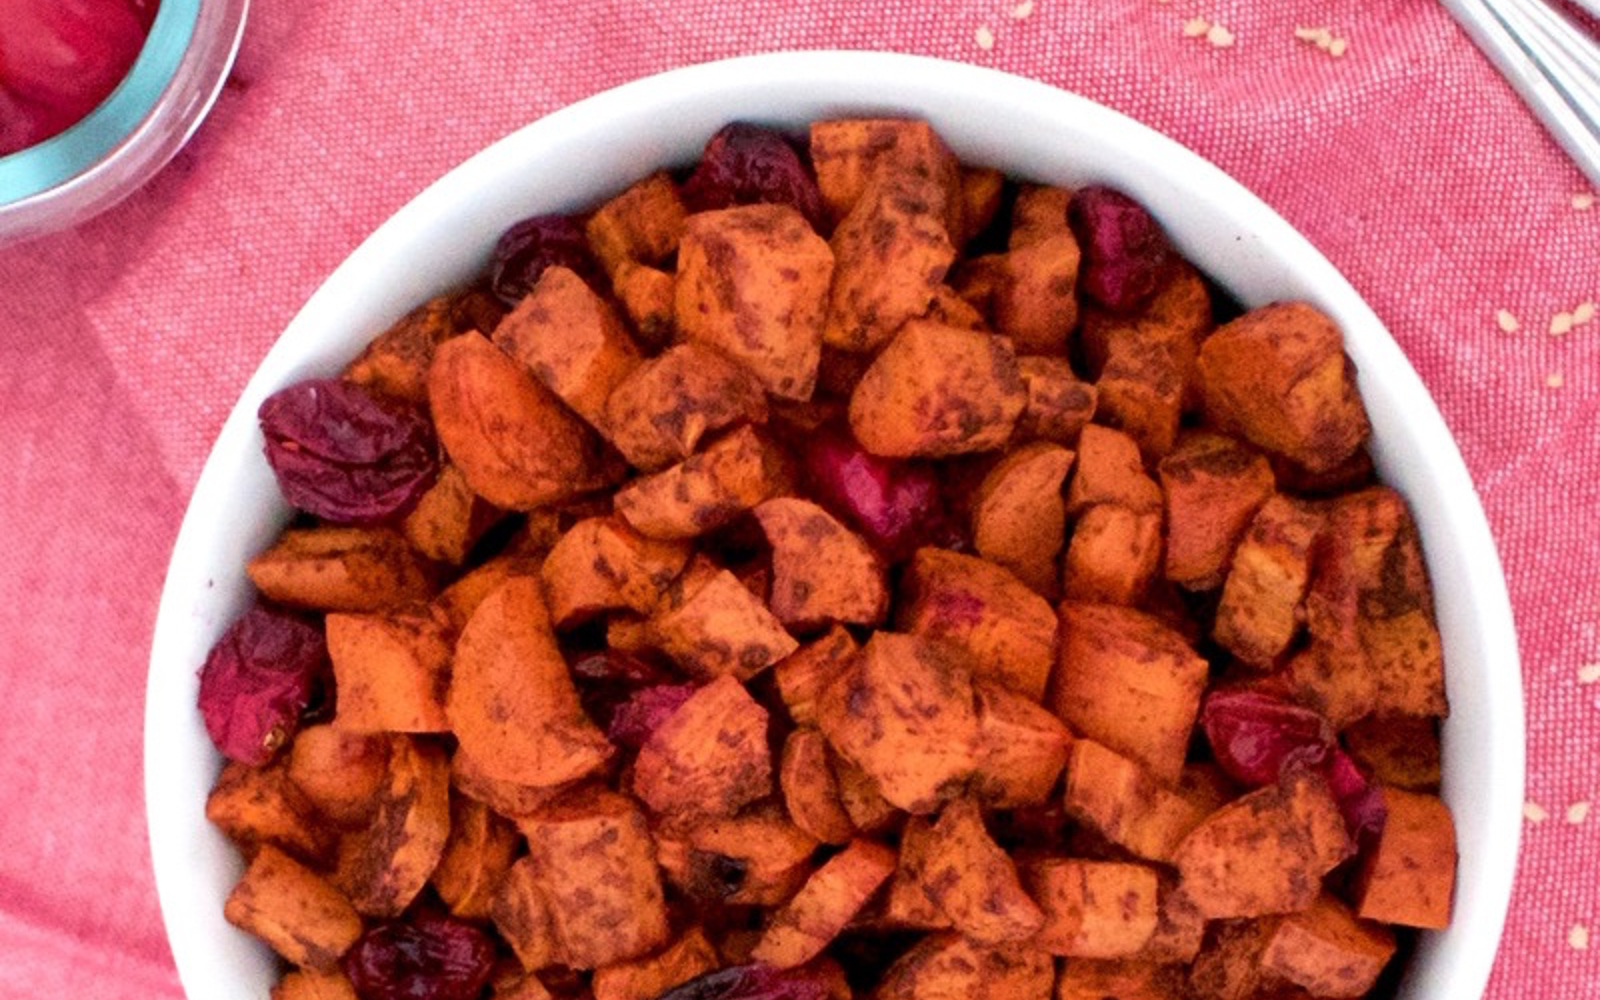 Cinnamon Roasted Carrots and Cranberries